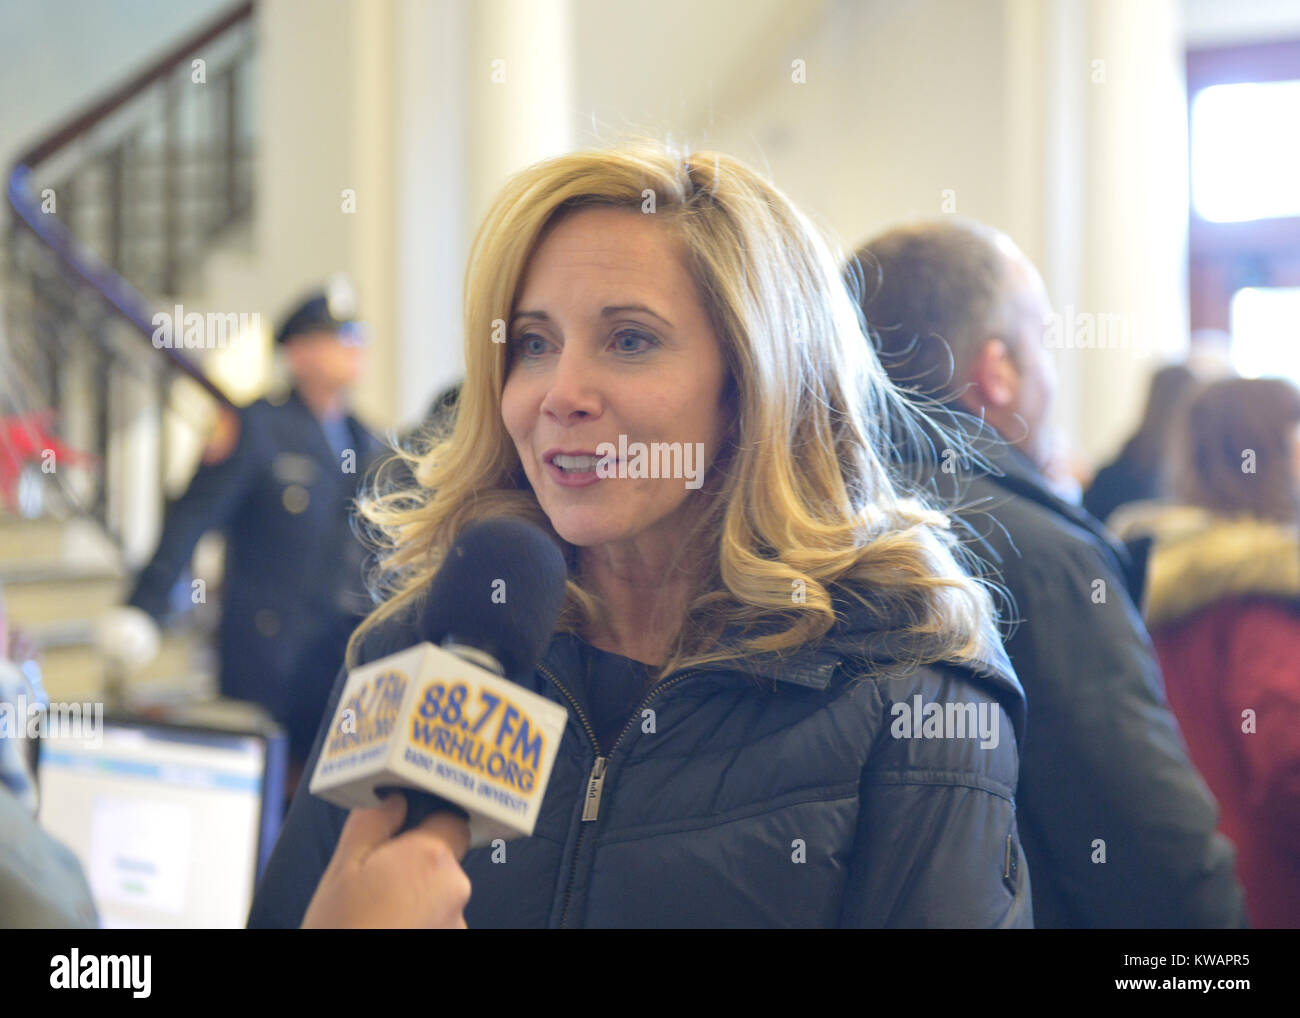 Mineola, New York, USA. January 1, 2018. Town of Hempstead Supervisor LAURA GILLEN, a Democrat, is interviewed by - Stock Image